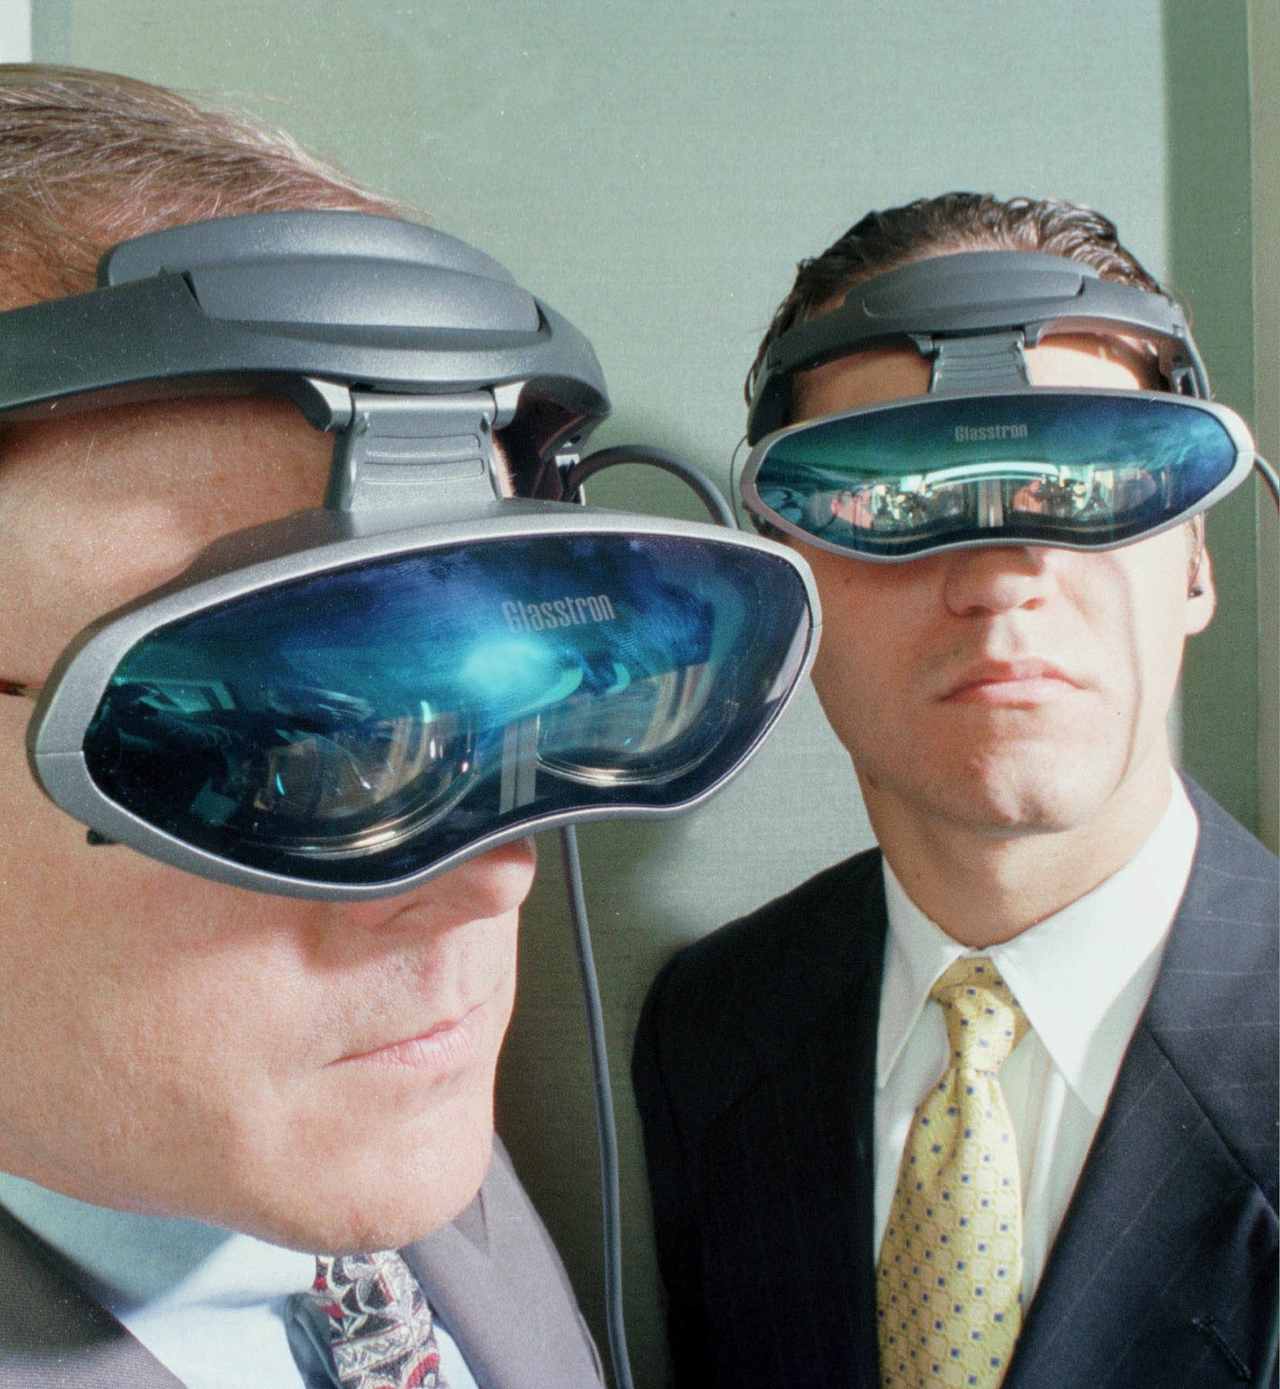 Getty Image: Sony executives Dan Nicholson, left, and Federico Stubbe show off the portable 10-ounce headset that connects to any analog or digital source in New York on July 29, 1998.